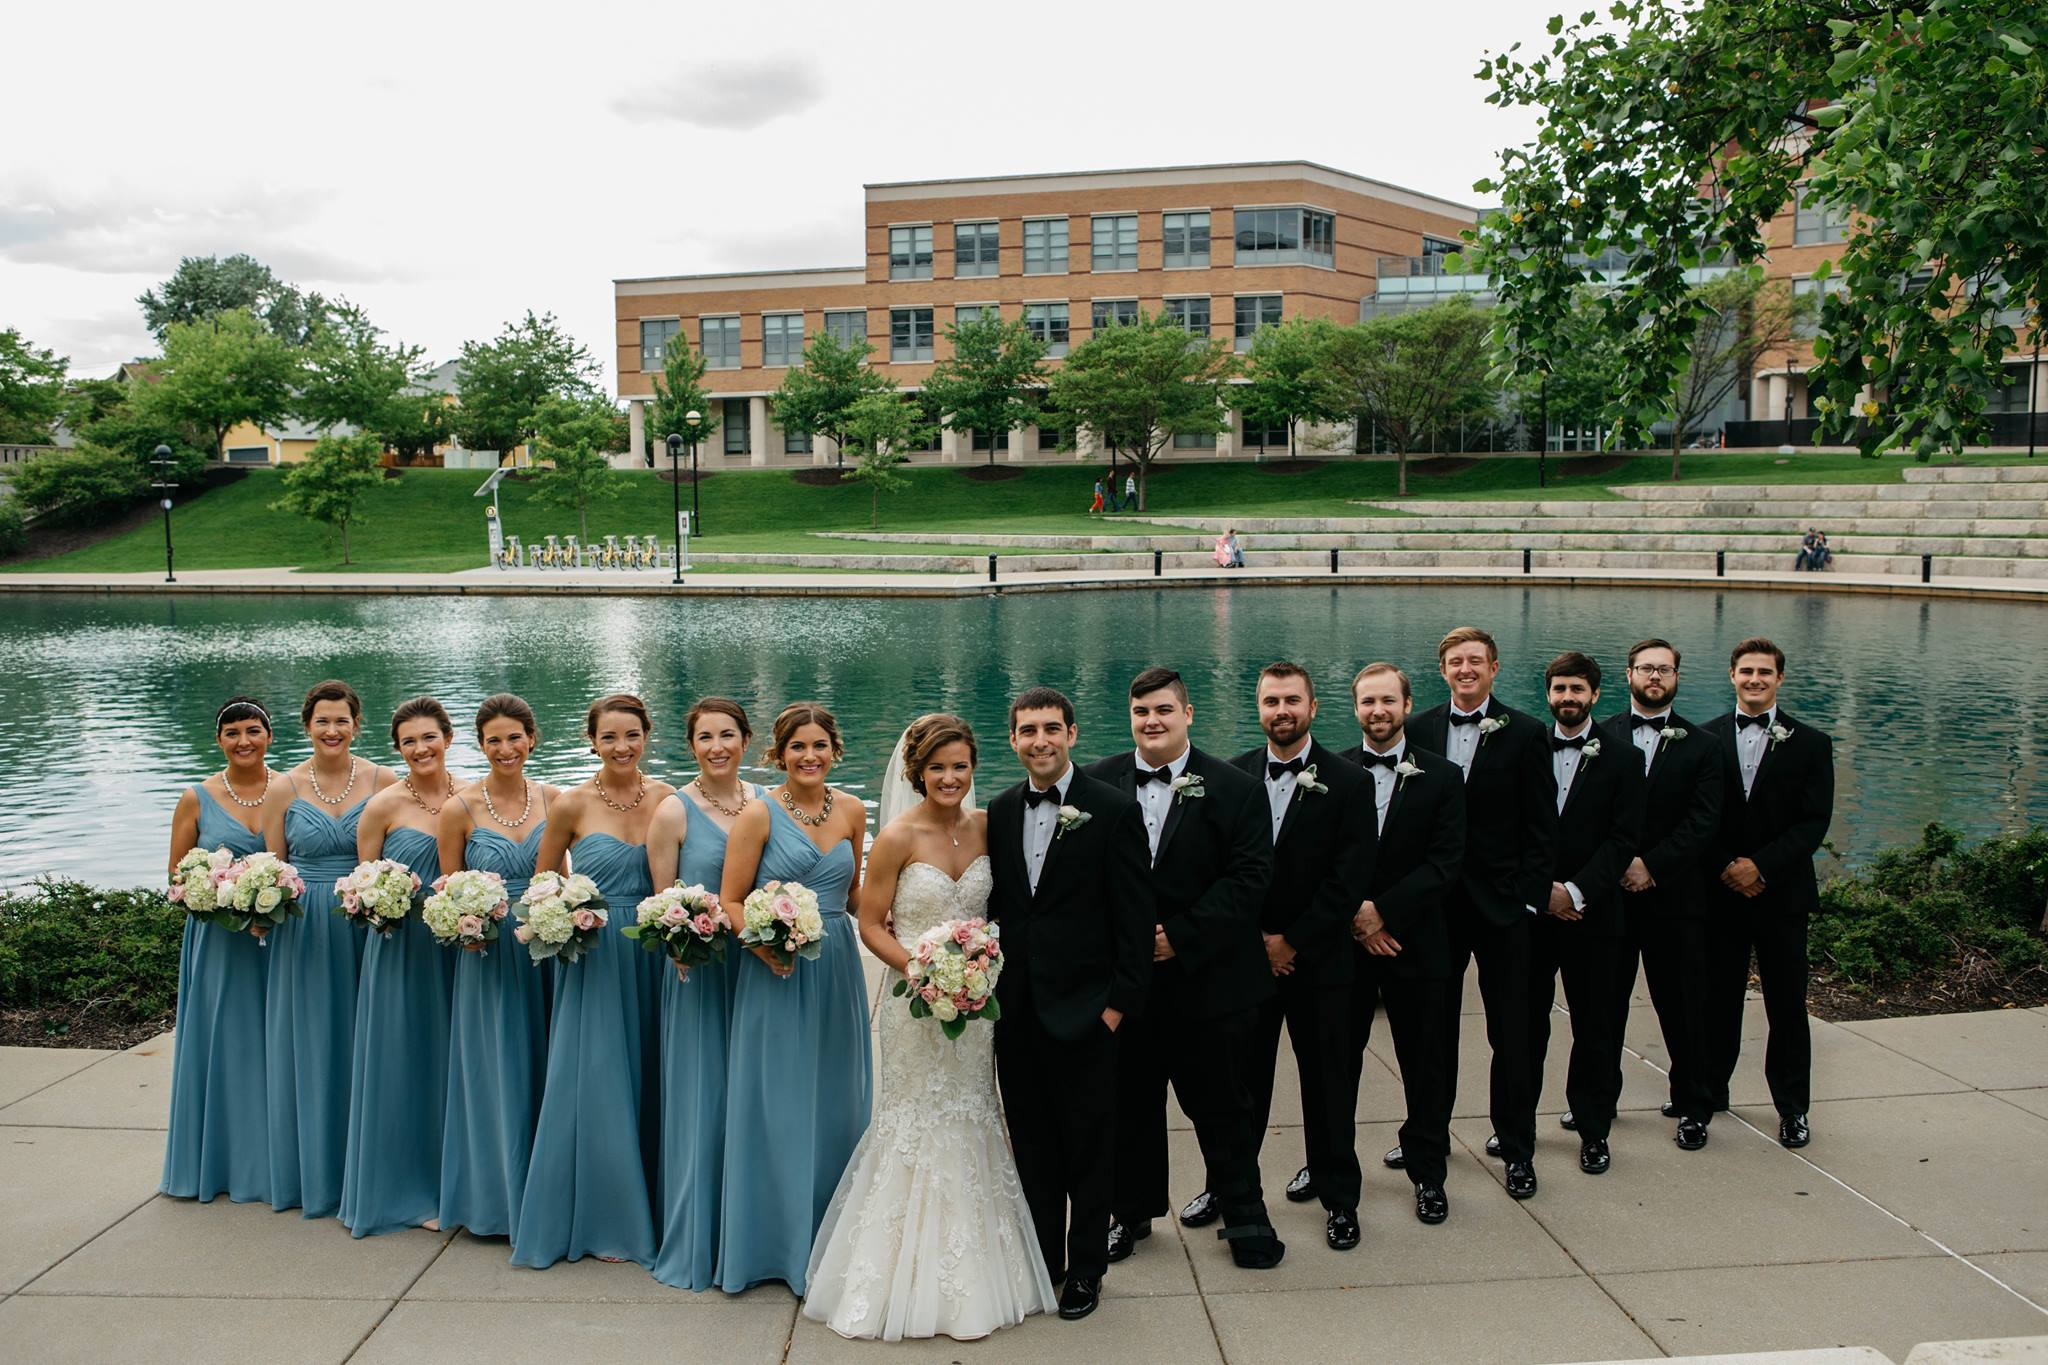 It's a family affair -- when the groom's family owns a bridal shop you know everyone in the bridal party was outfitted by Treat's. Congrats to Kayla and Tim! Photo by   Gretchen Robards Photography .